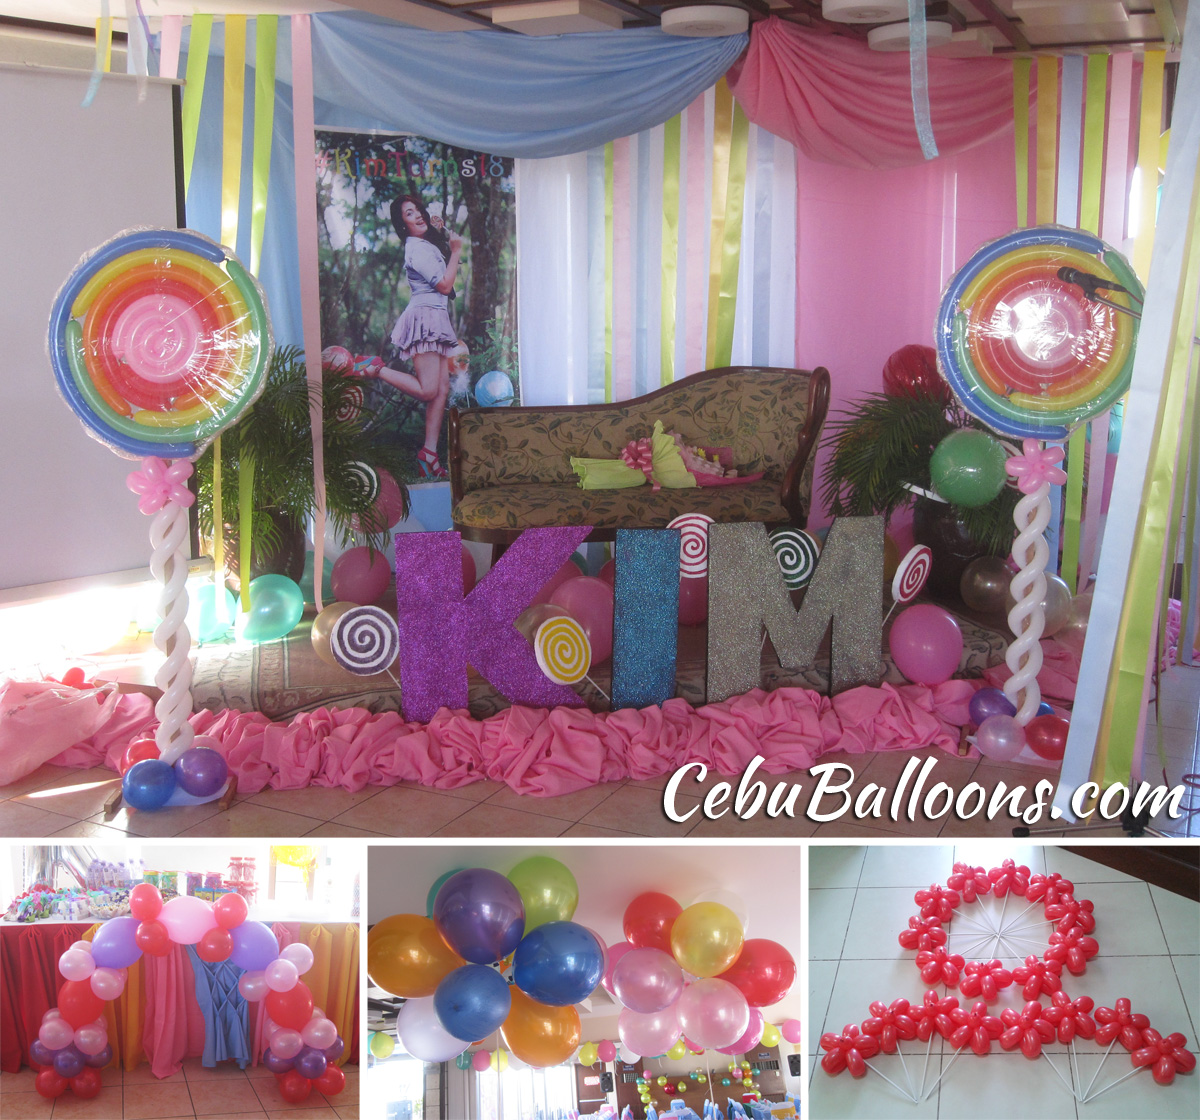 Debut 18th Birthday Cebu Balloons and Party Supplies